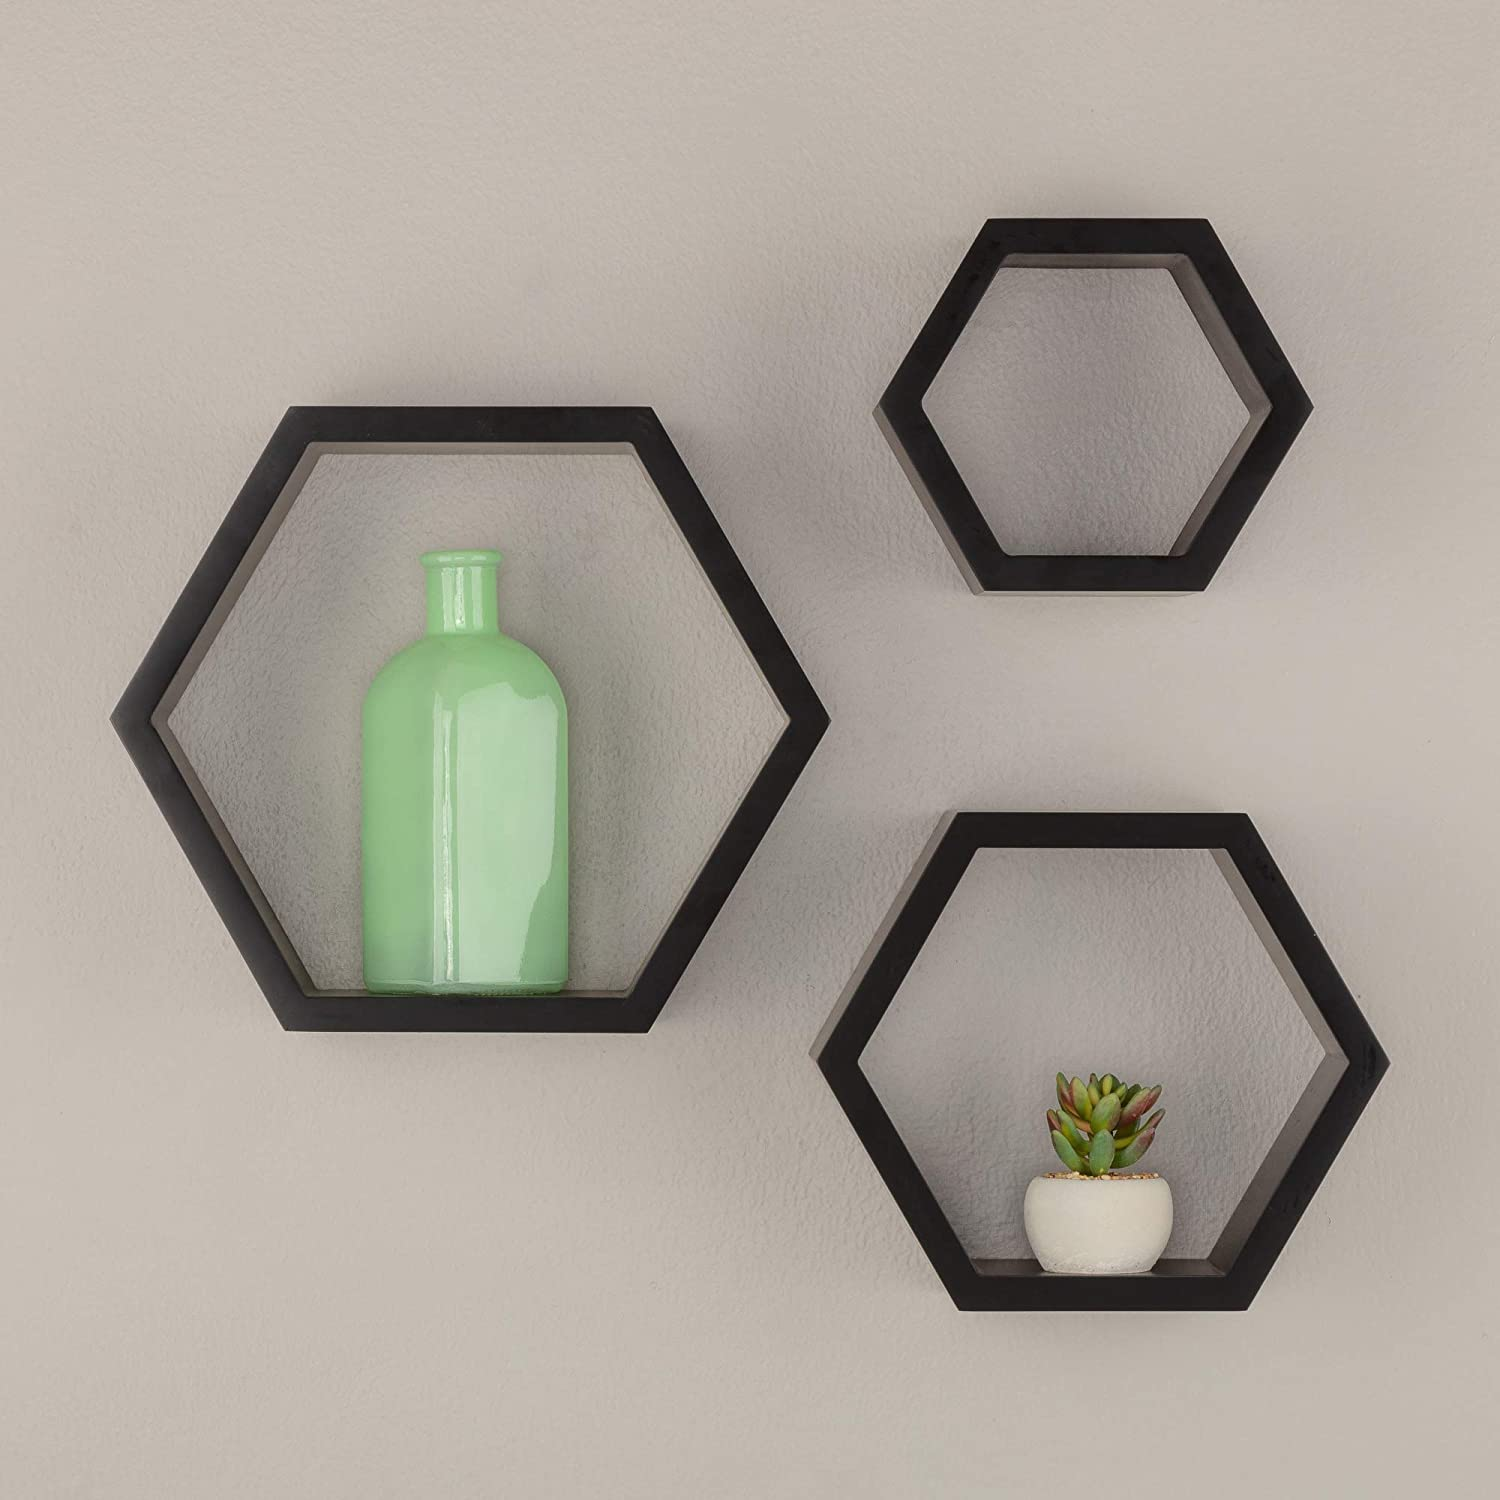 Gallery Solutions Black HexaGallery Geometric Decorative, Set of 3 Wall Mounted Floating Shelves, 3 Count